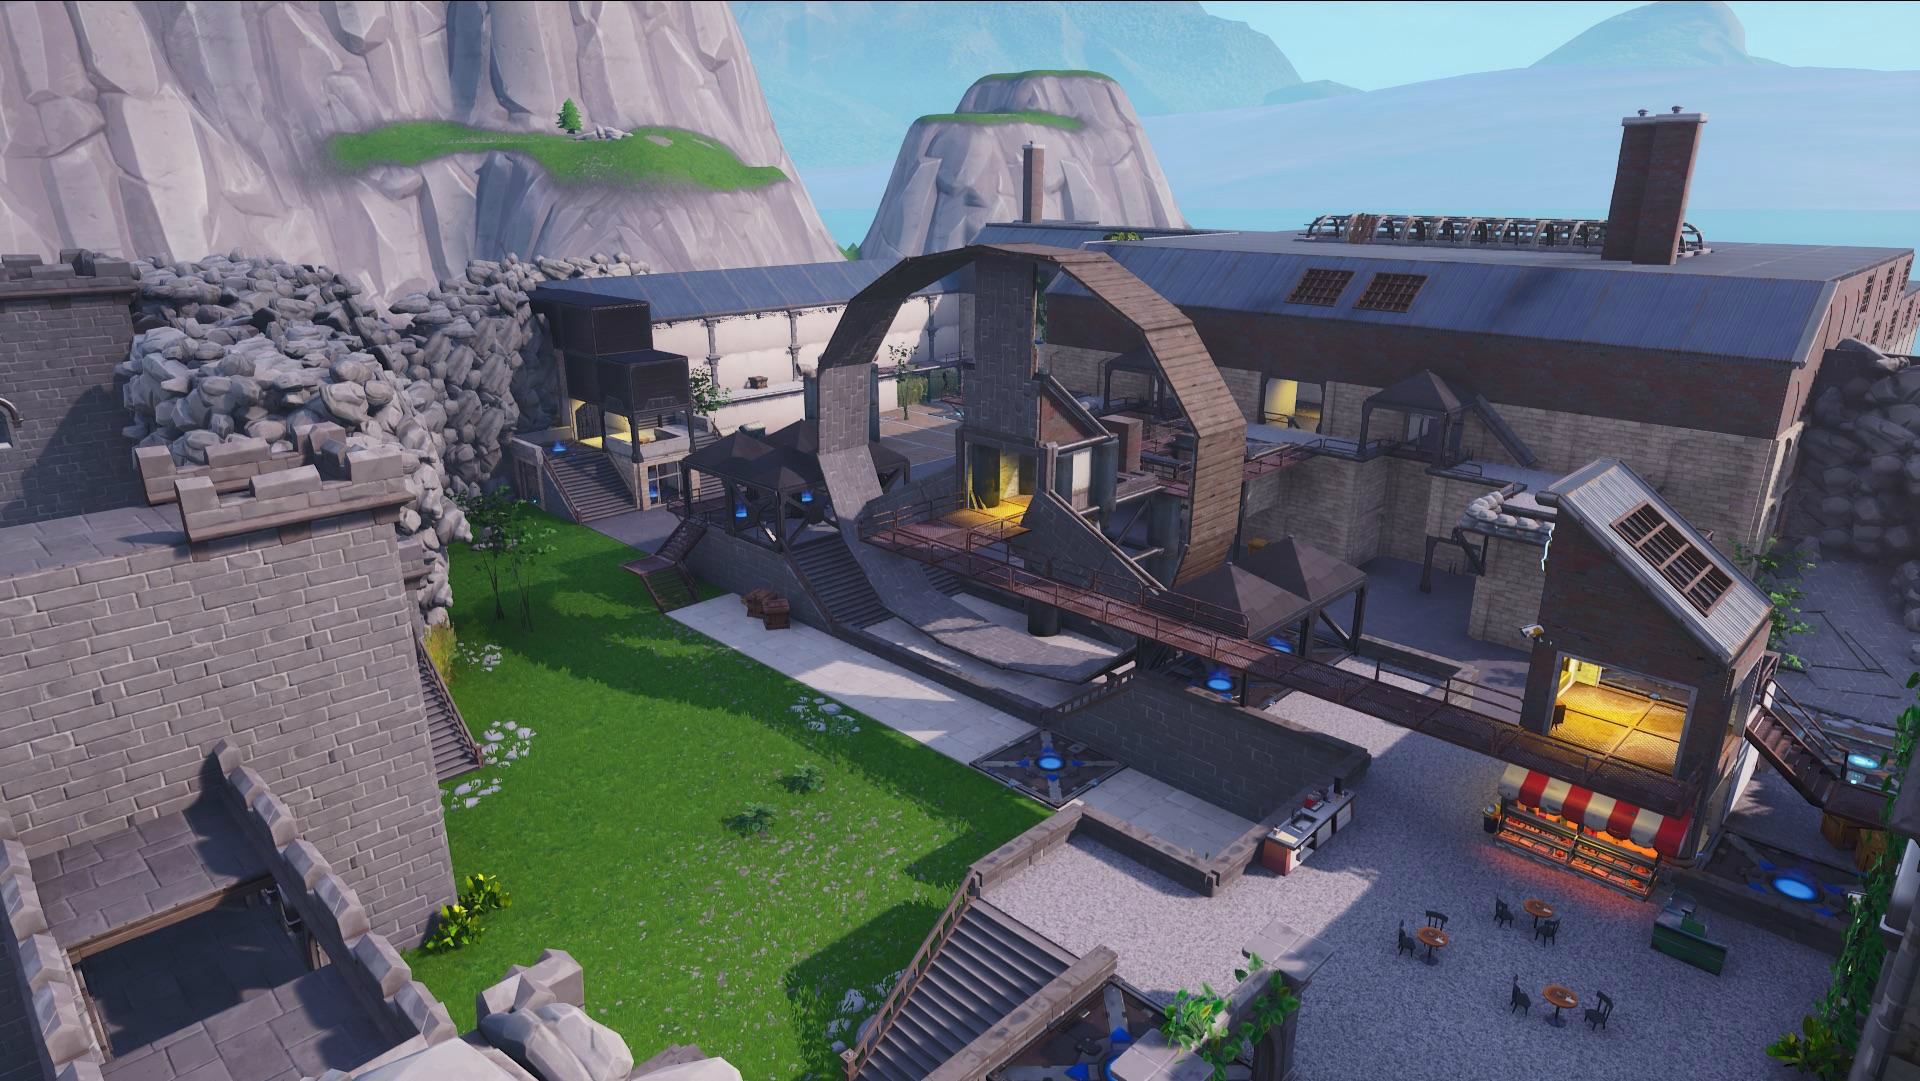 Last Resort Halo 3 Fortnite